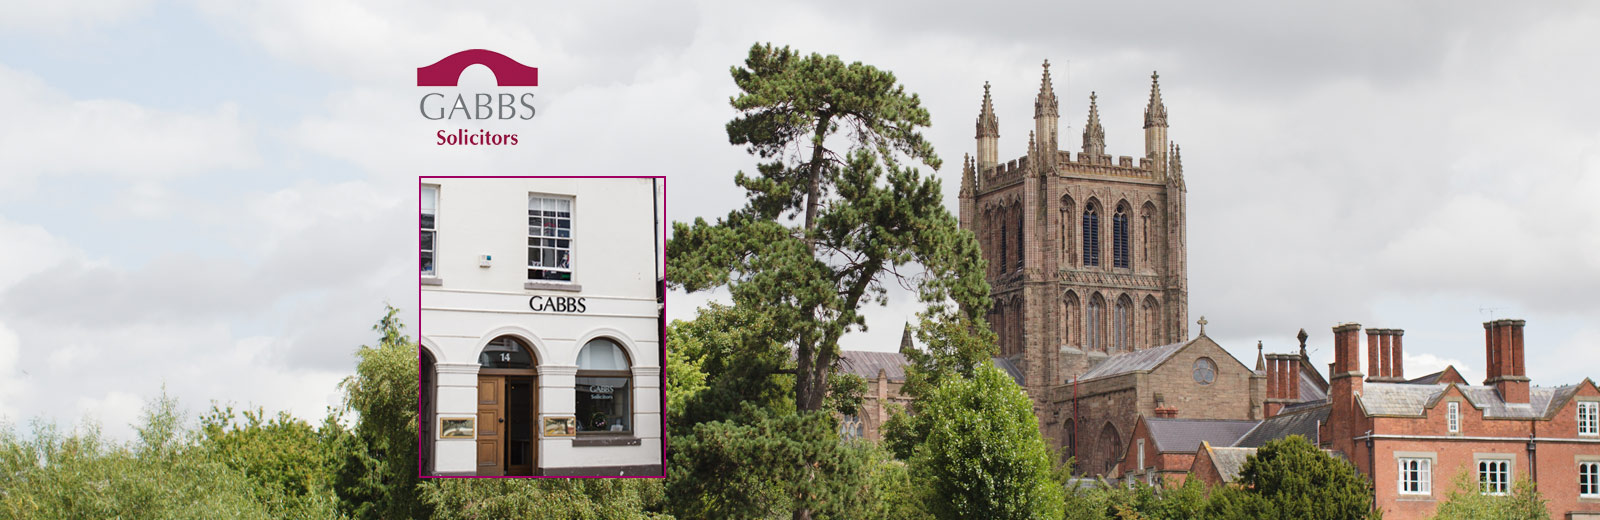 Hereford Cathedral overlaid with the GABBS solicitors logo, and a picture of the front of the GABBS office.